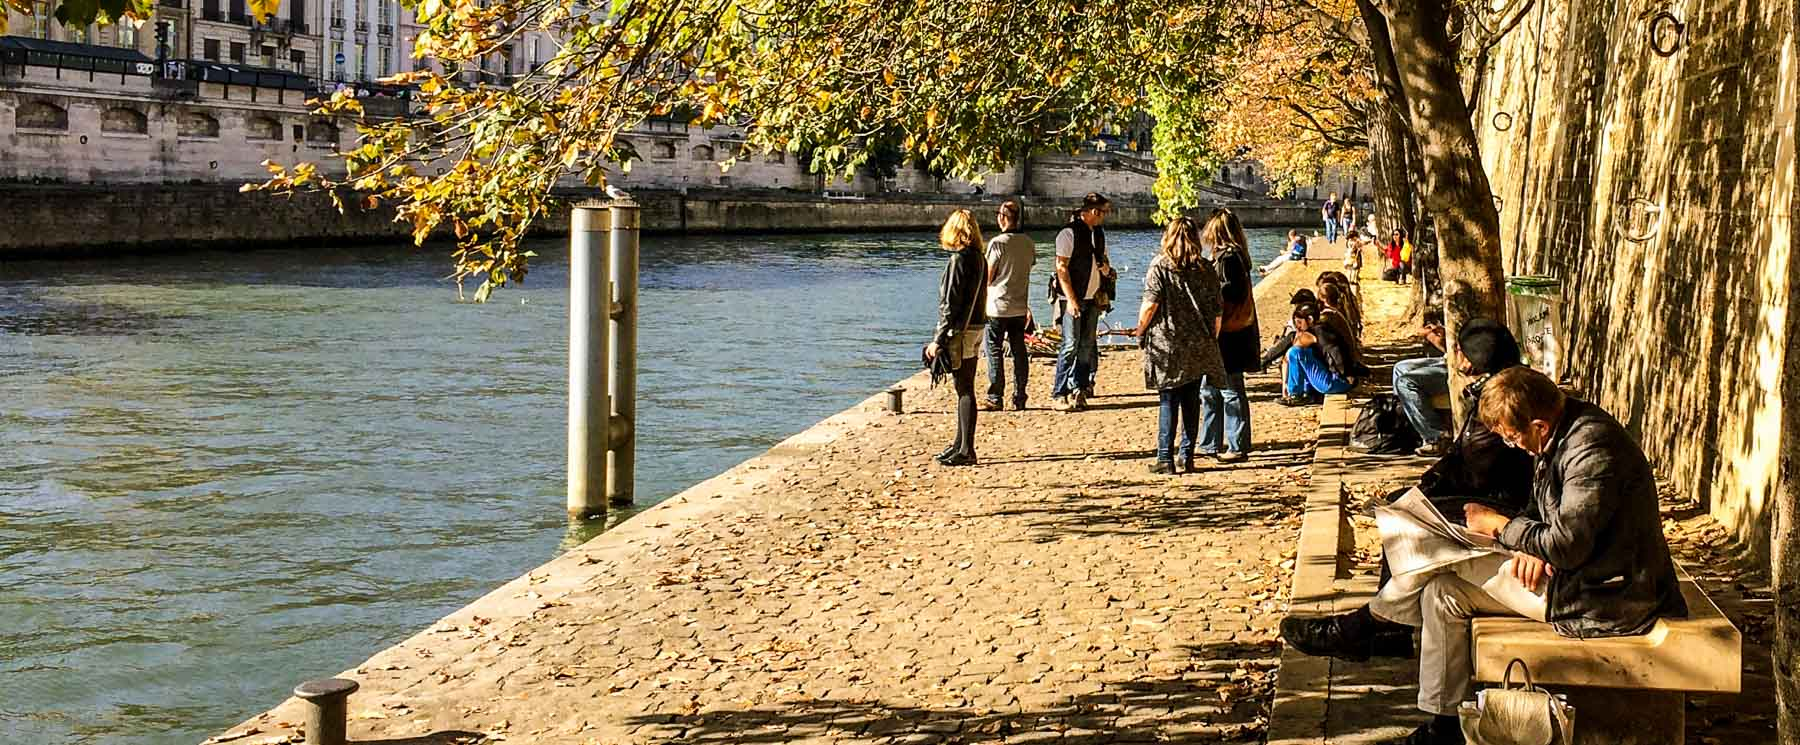 People on the walkway by the Seine.